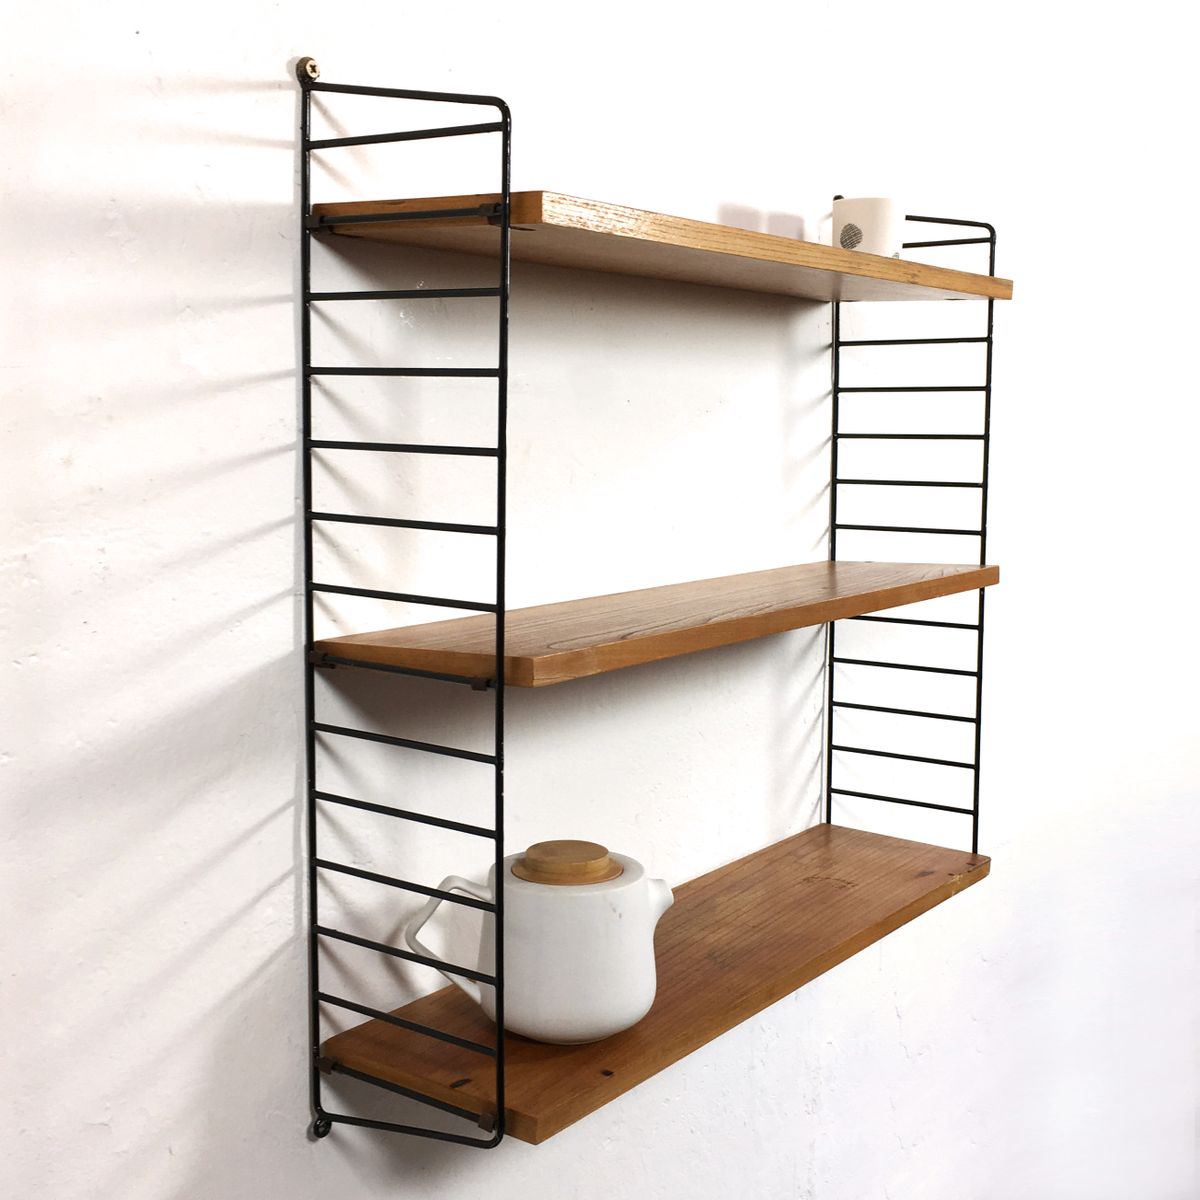 vintage swedish modular wall unit with three shelves by nisse strinning for string for sale at. Black Bedroom Furniture Sets. Home Design Ideas